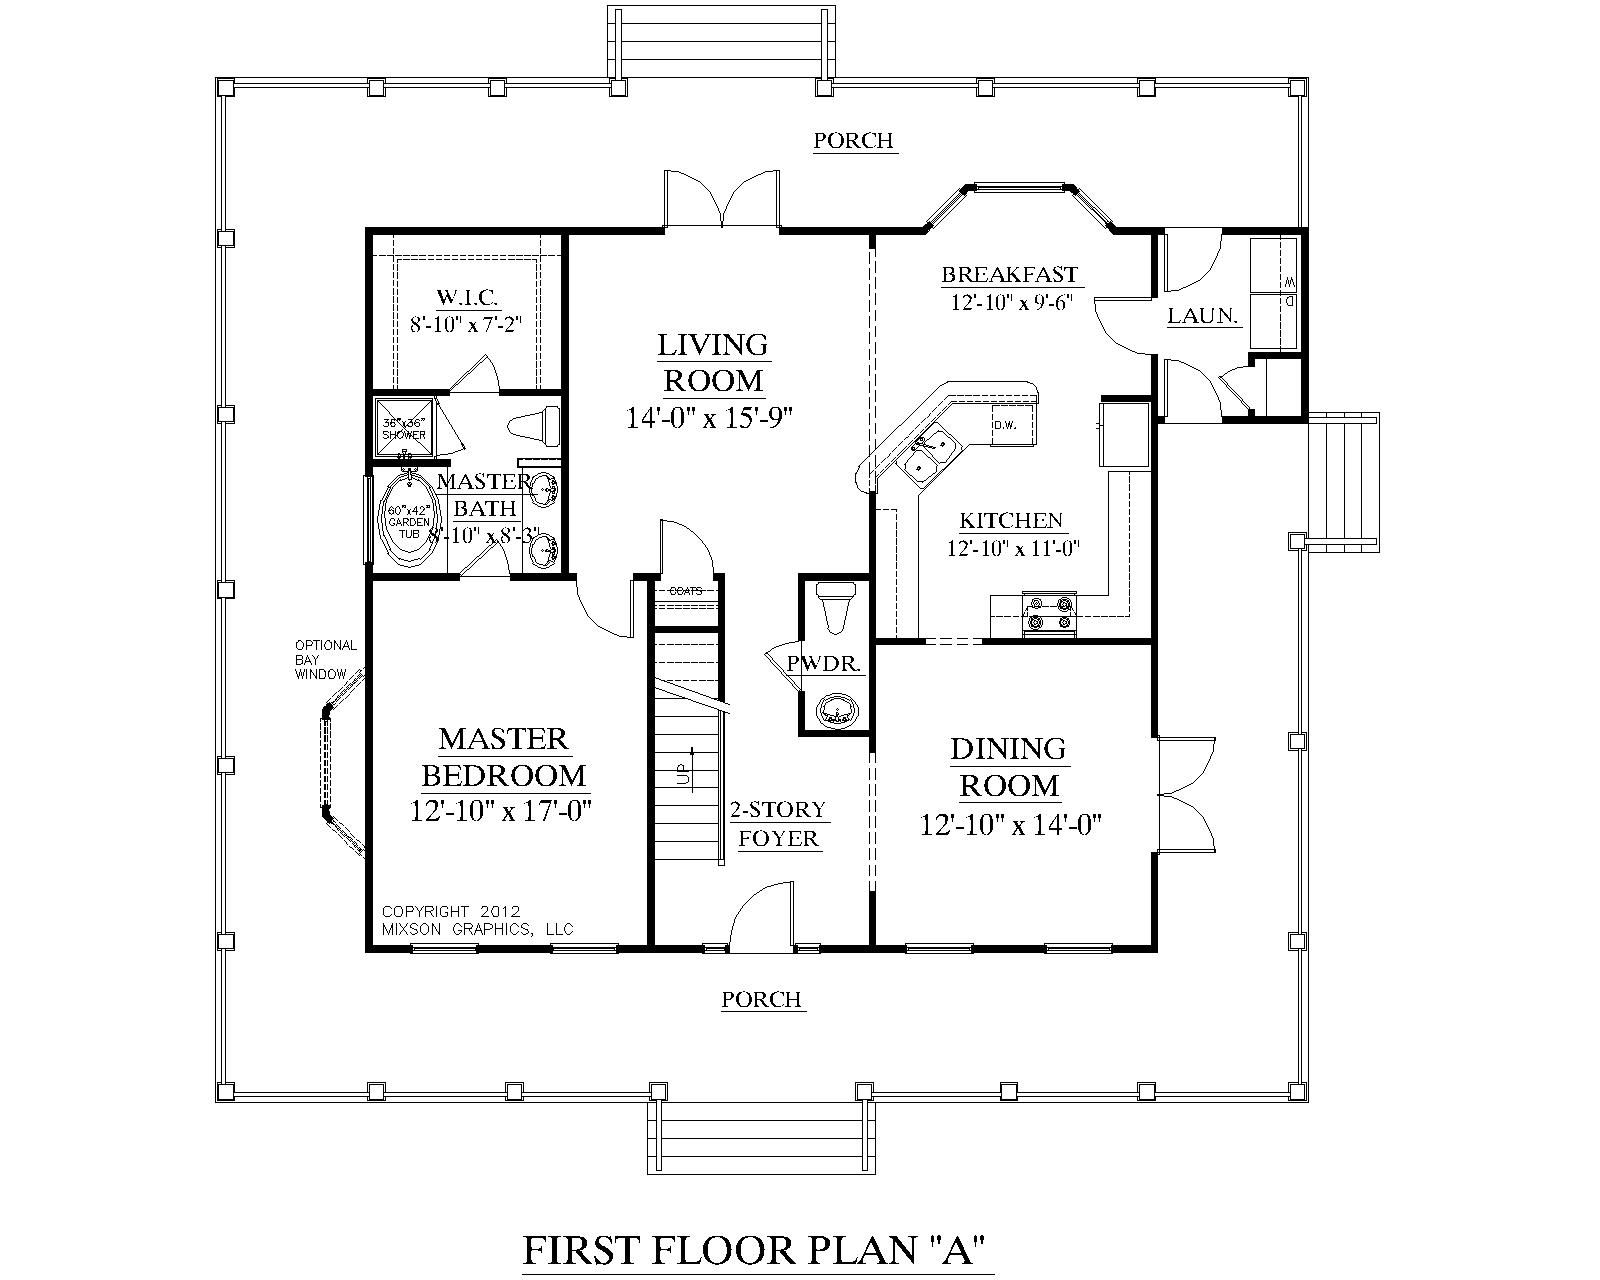 small one bedroom house plans traditional 1 12 story house plan - Small House Blueprints 2